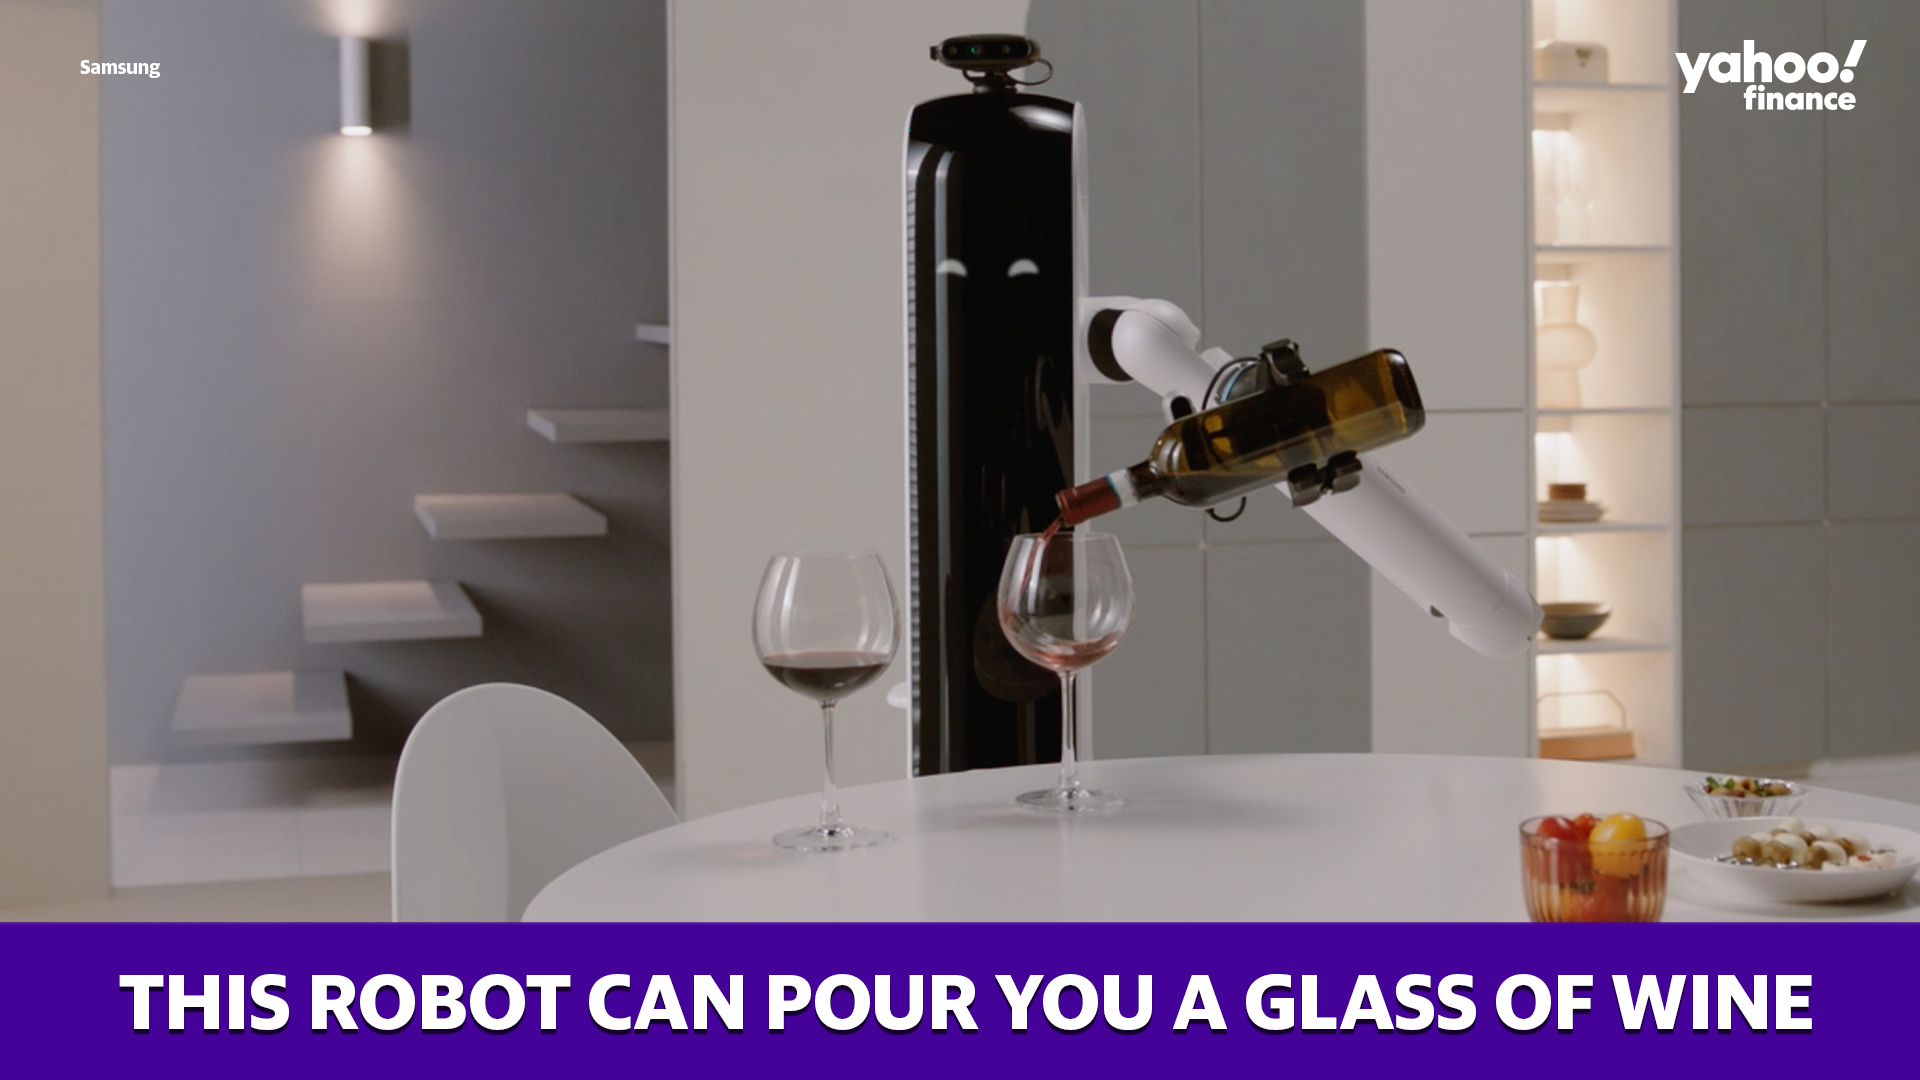 Human-like 'Bot Handy' Robot can pour you a Glass of Wine, do Dishes, and help with Laundry